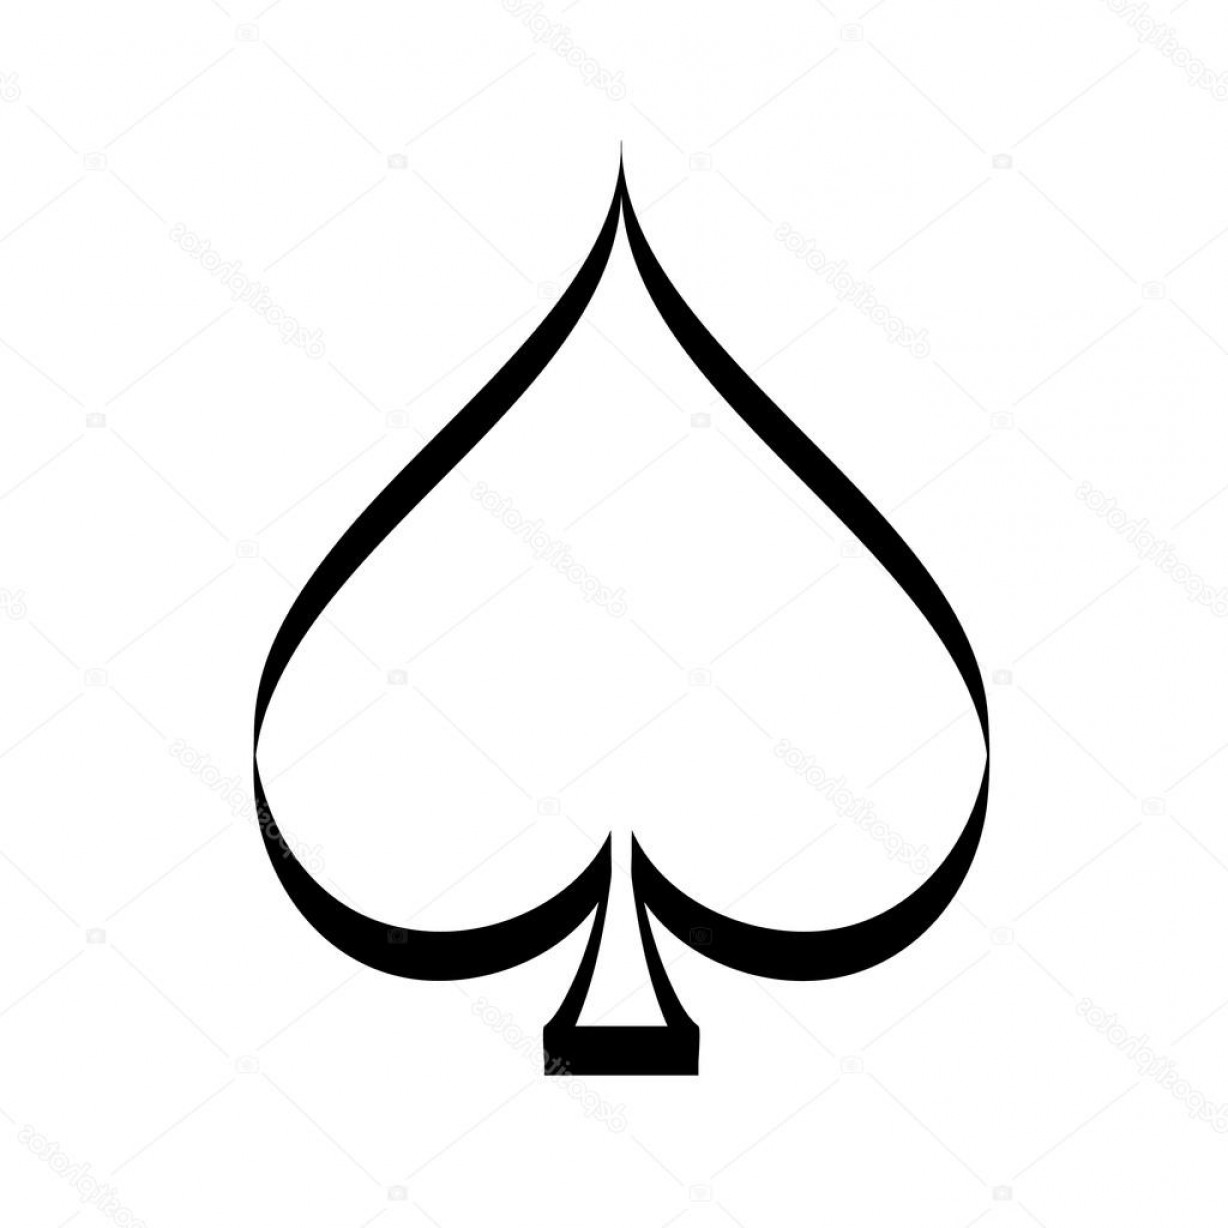 Spade Card Vector: Stock Illustration Vector Playing Card Spade Suit